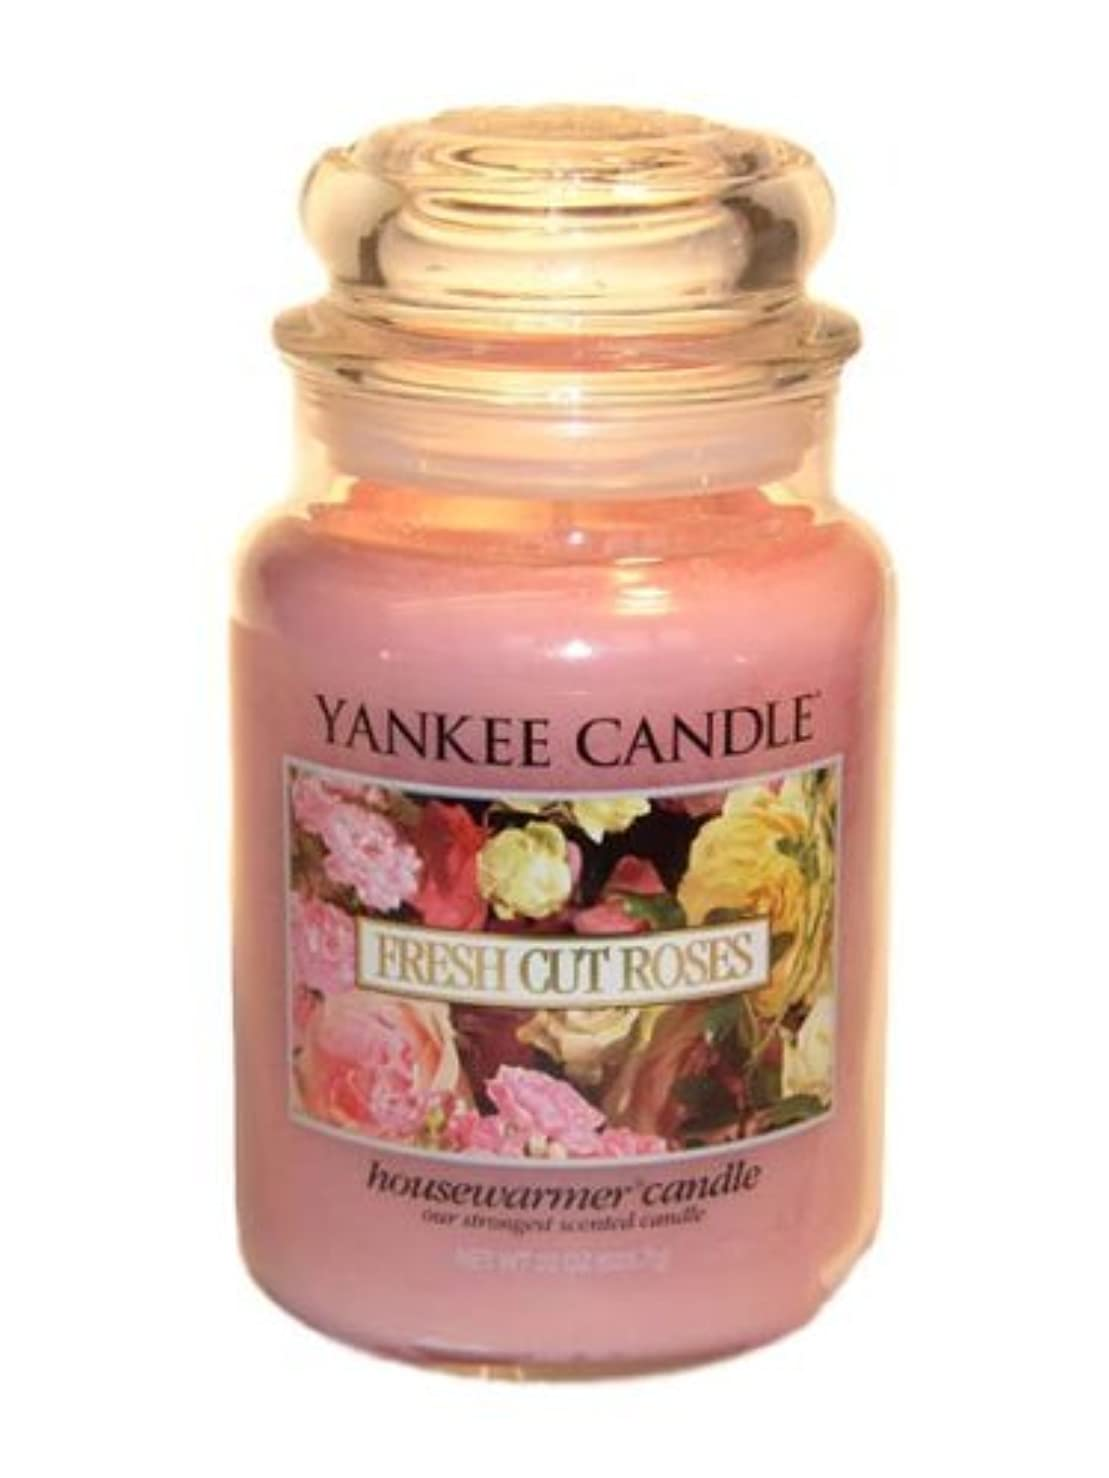 Yankee Candle Large 22-Ounce Jar Candle, Fresh Cut Roses [並行輸入品]